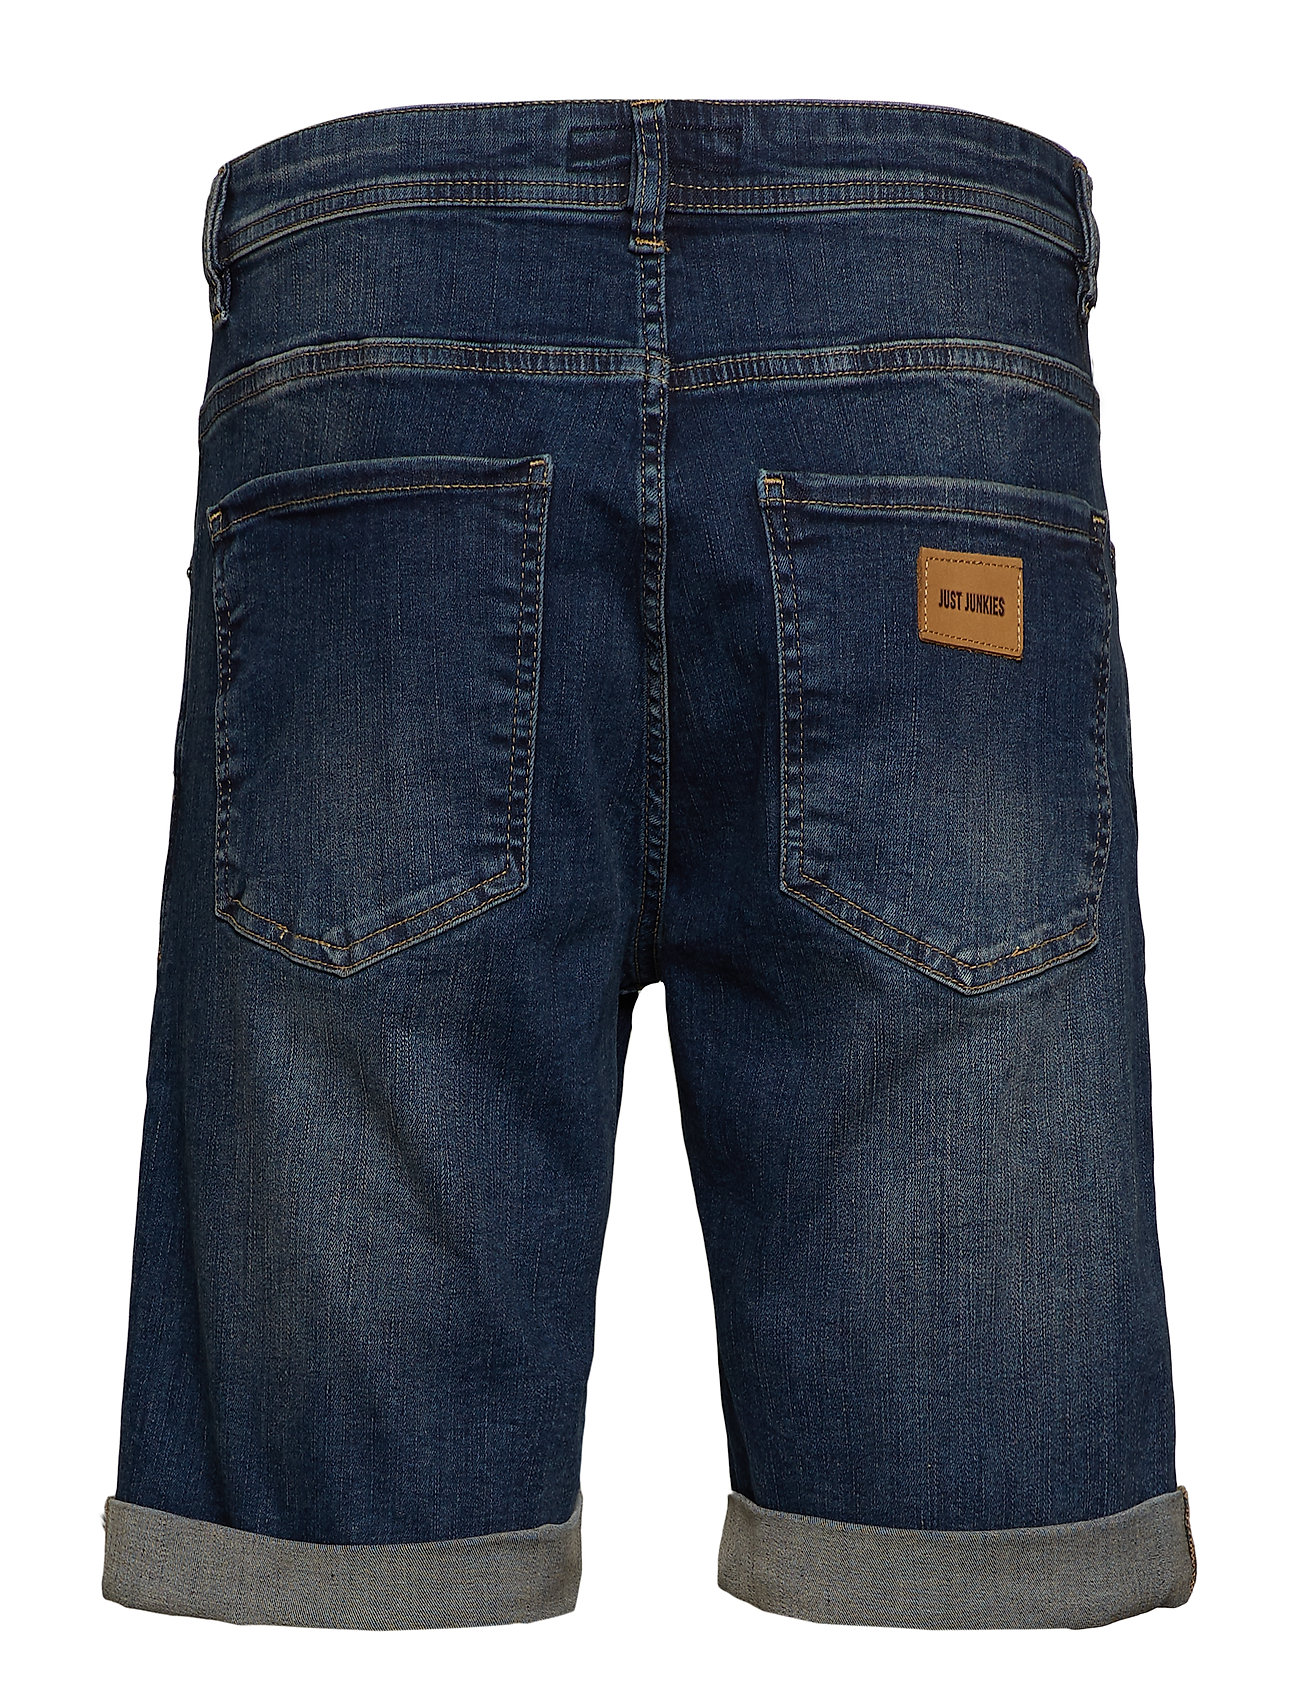 BlueJust Mike Bbbase Bbbase Mike BlueJust Shorts Junkies Shorts v0N8Omnw